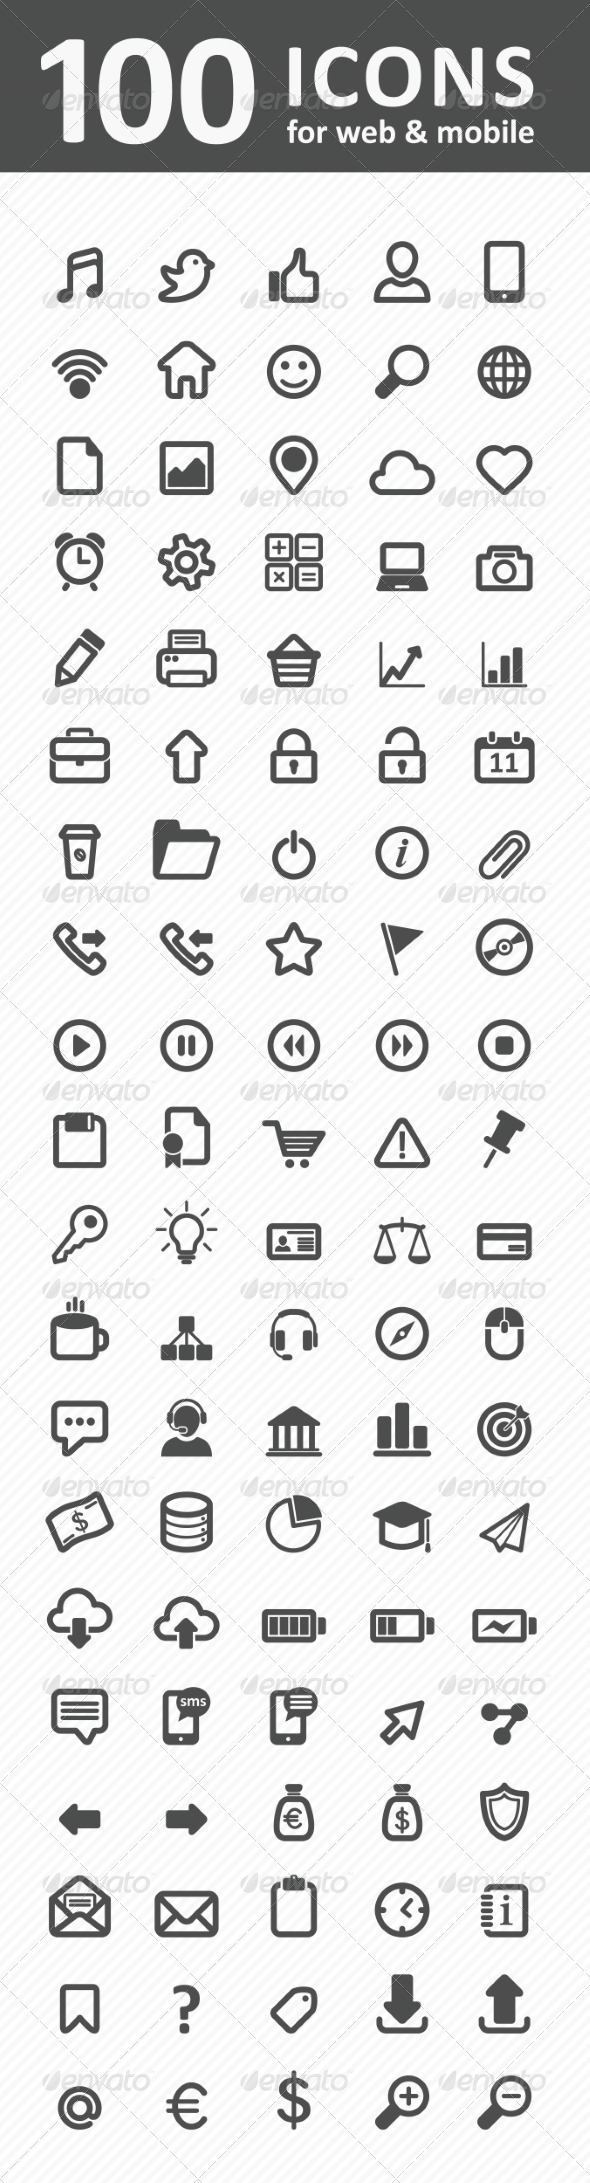 GraphicRiver 100 Icons for Web and Mobile 8364613